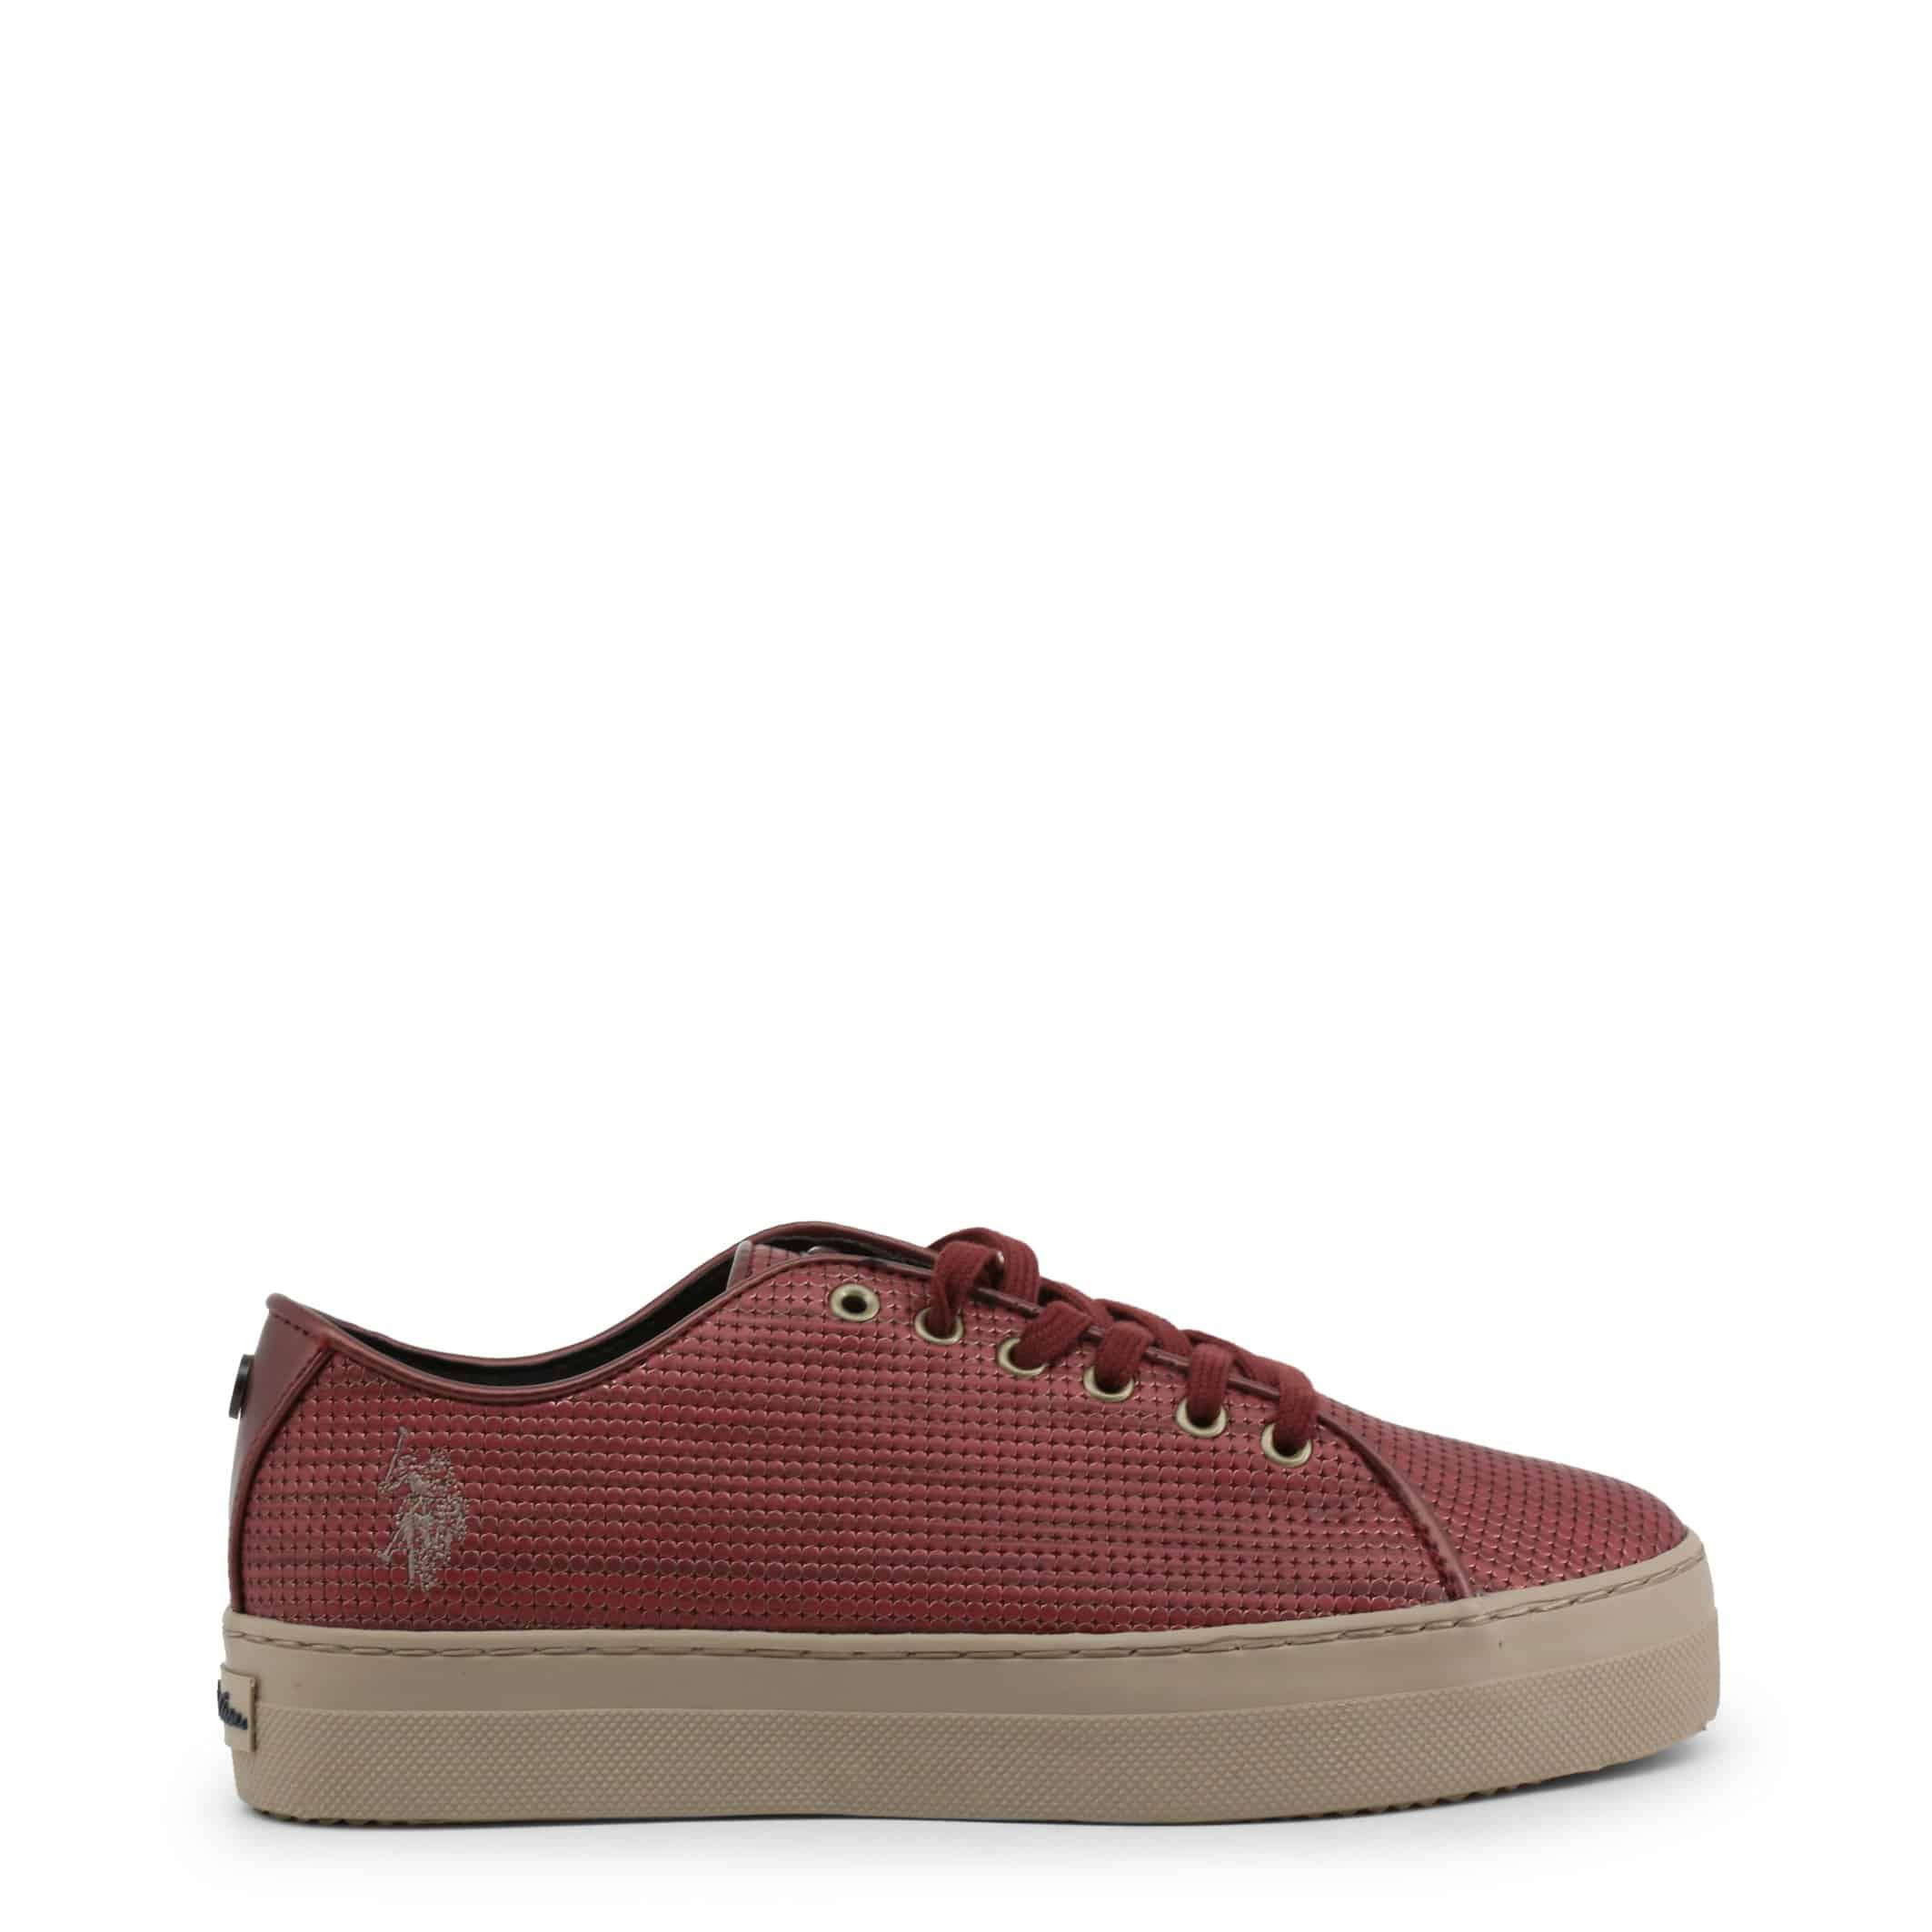 Sneakersy damskie U.S. POLO ASSN. TRIXY4139W8